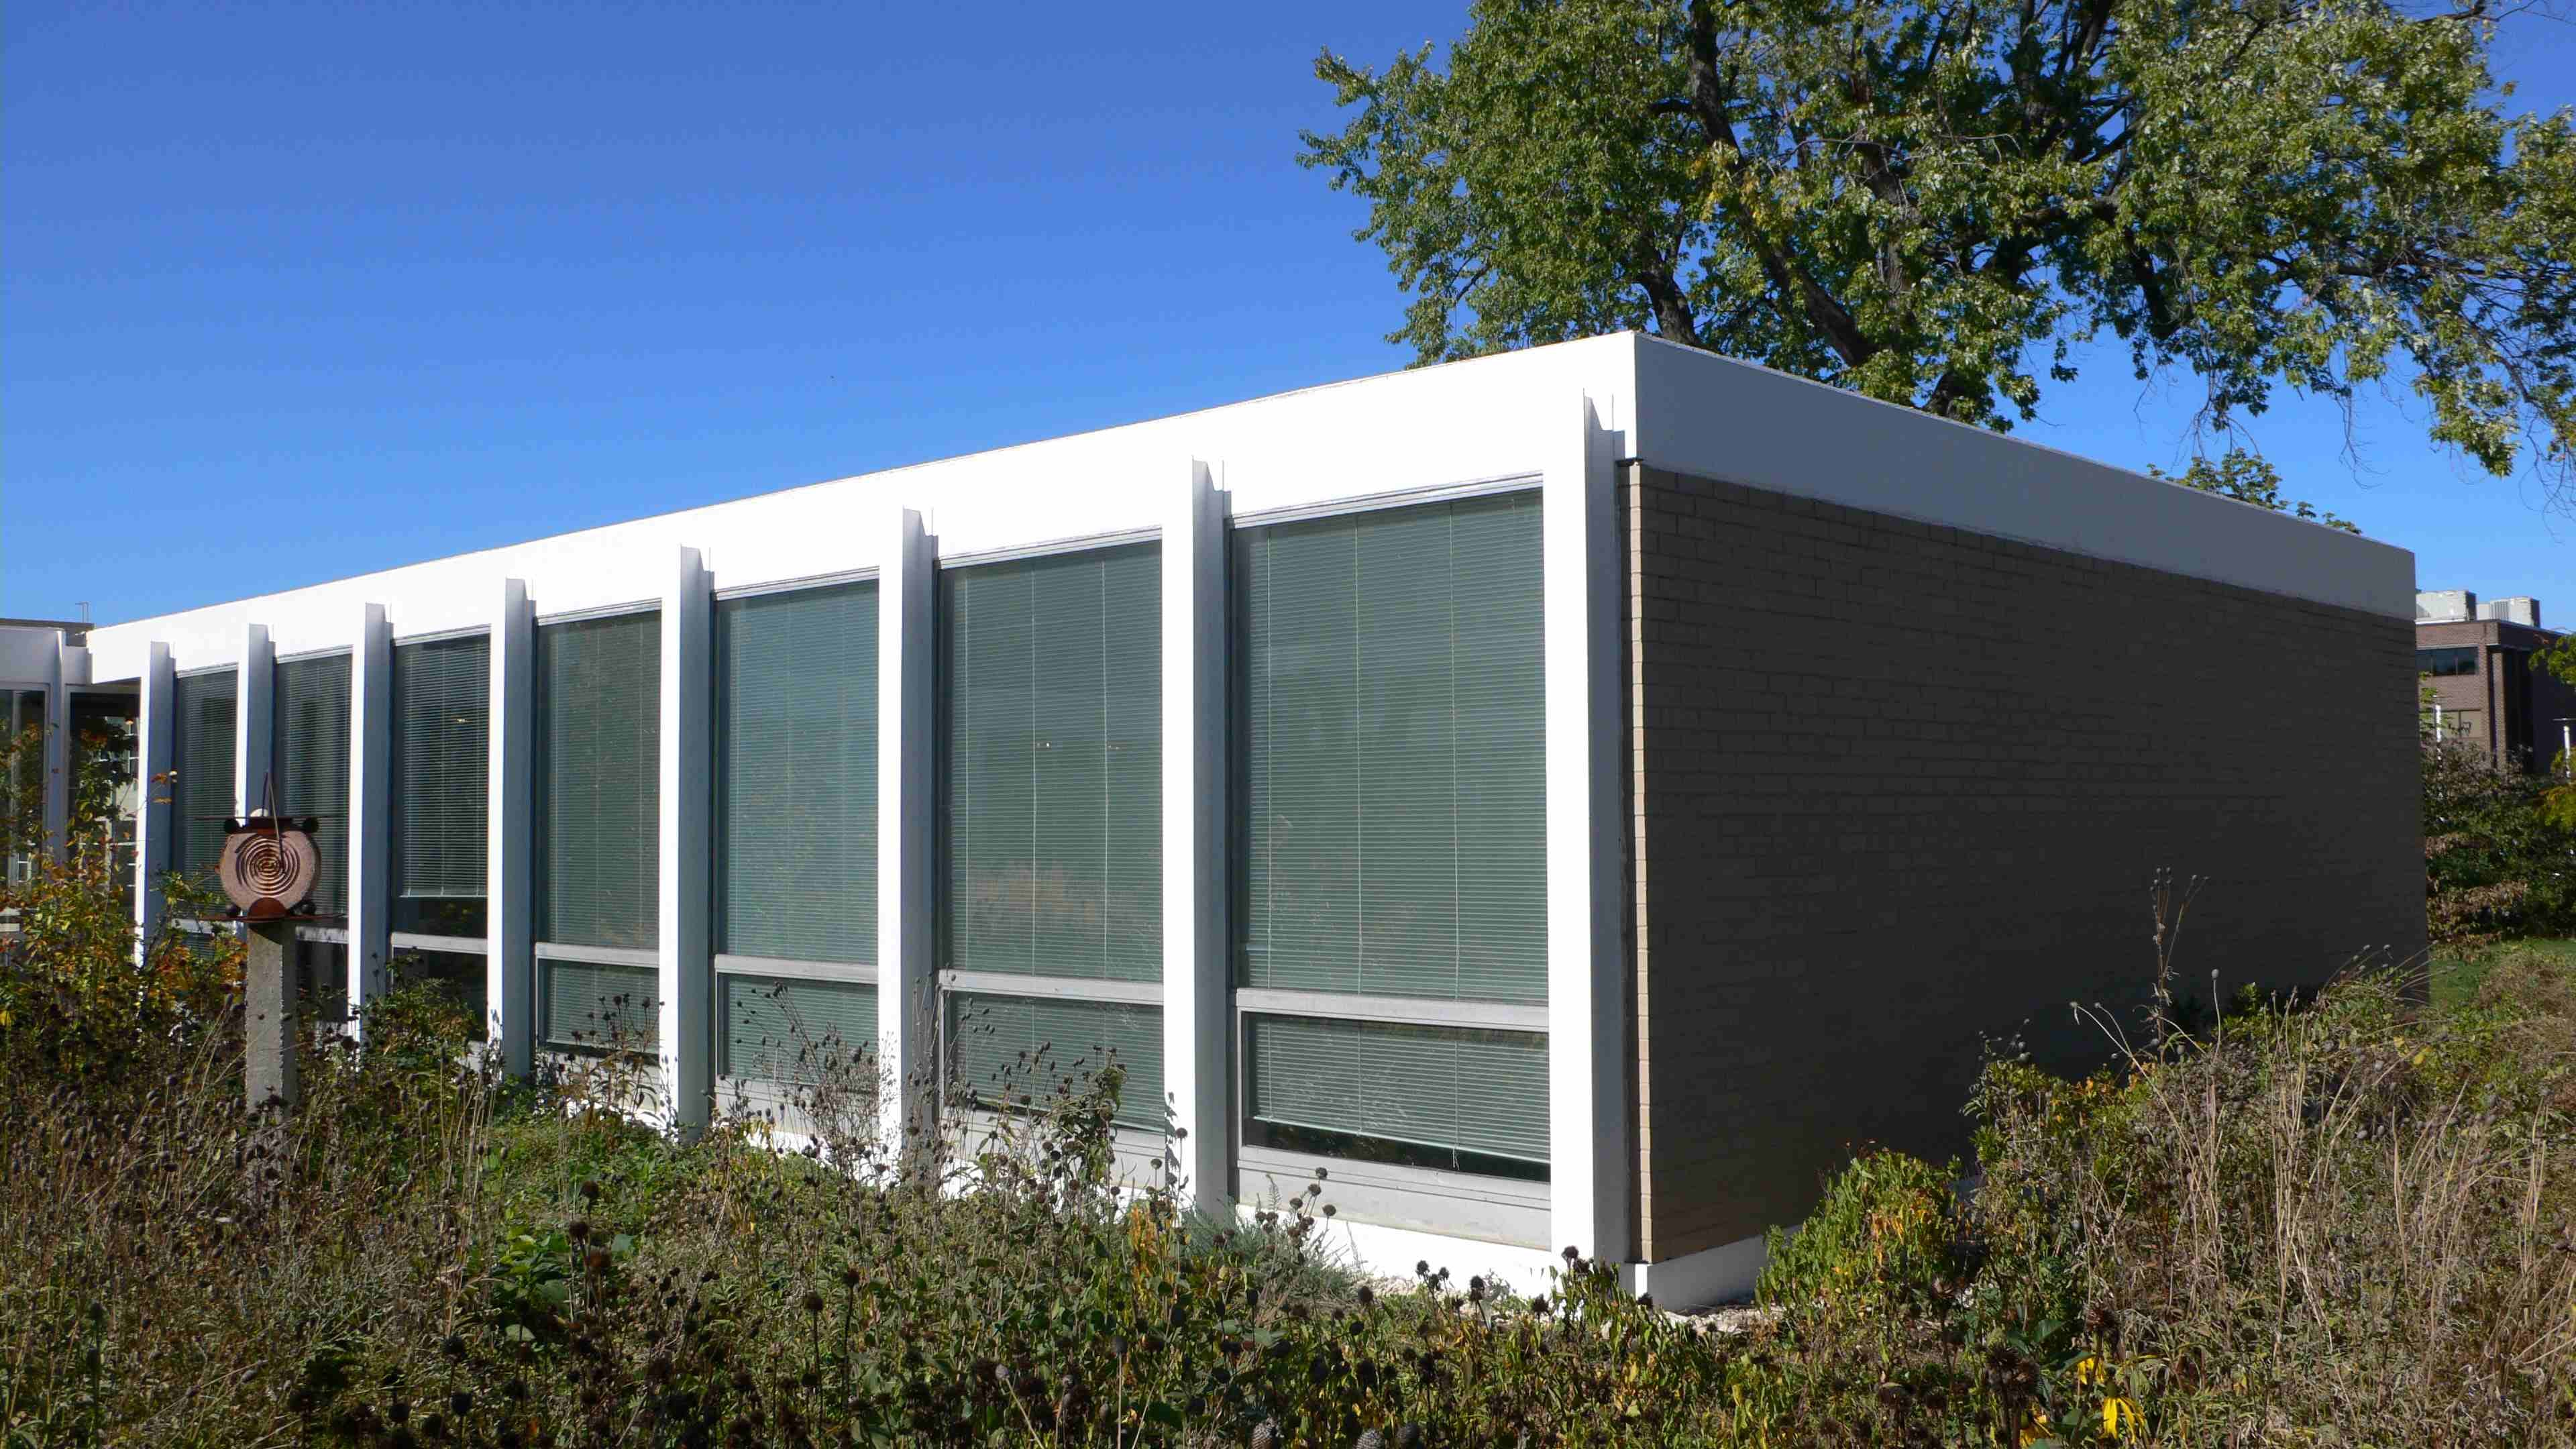 Mies' McCormick House gets an update so that people can